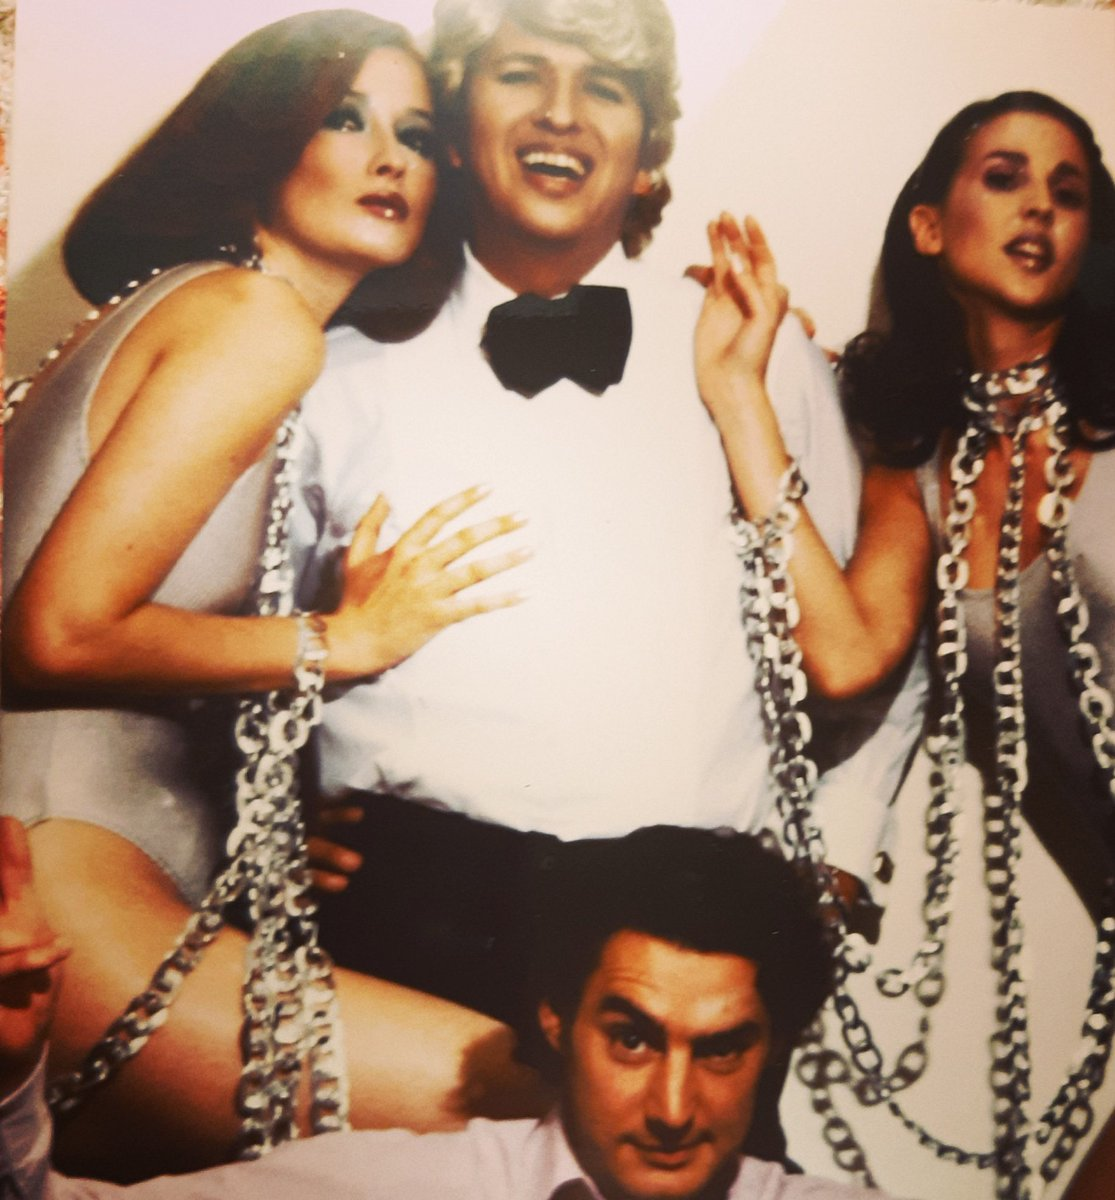 #fashionflashback Fashion Week #1990s @EricBergere @mariotestino @suzannevonaichinger Theme: 1970s kitschy French pop star Claude François and his 'Claudettes'. #crazycats #partytimes #timewarp #memoriesofalifetime #90soutfit #90smodels #backstagesecrets #costumeparty #faghaglife